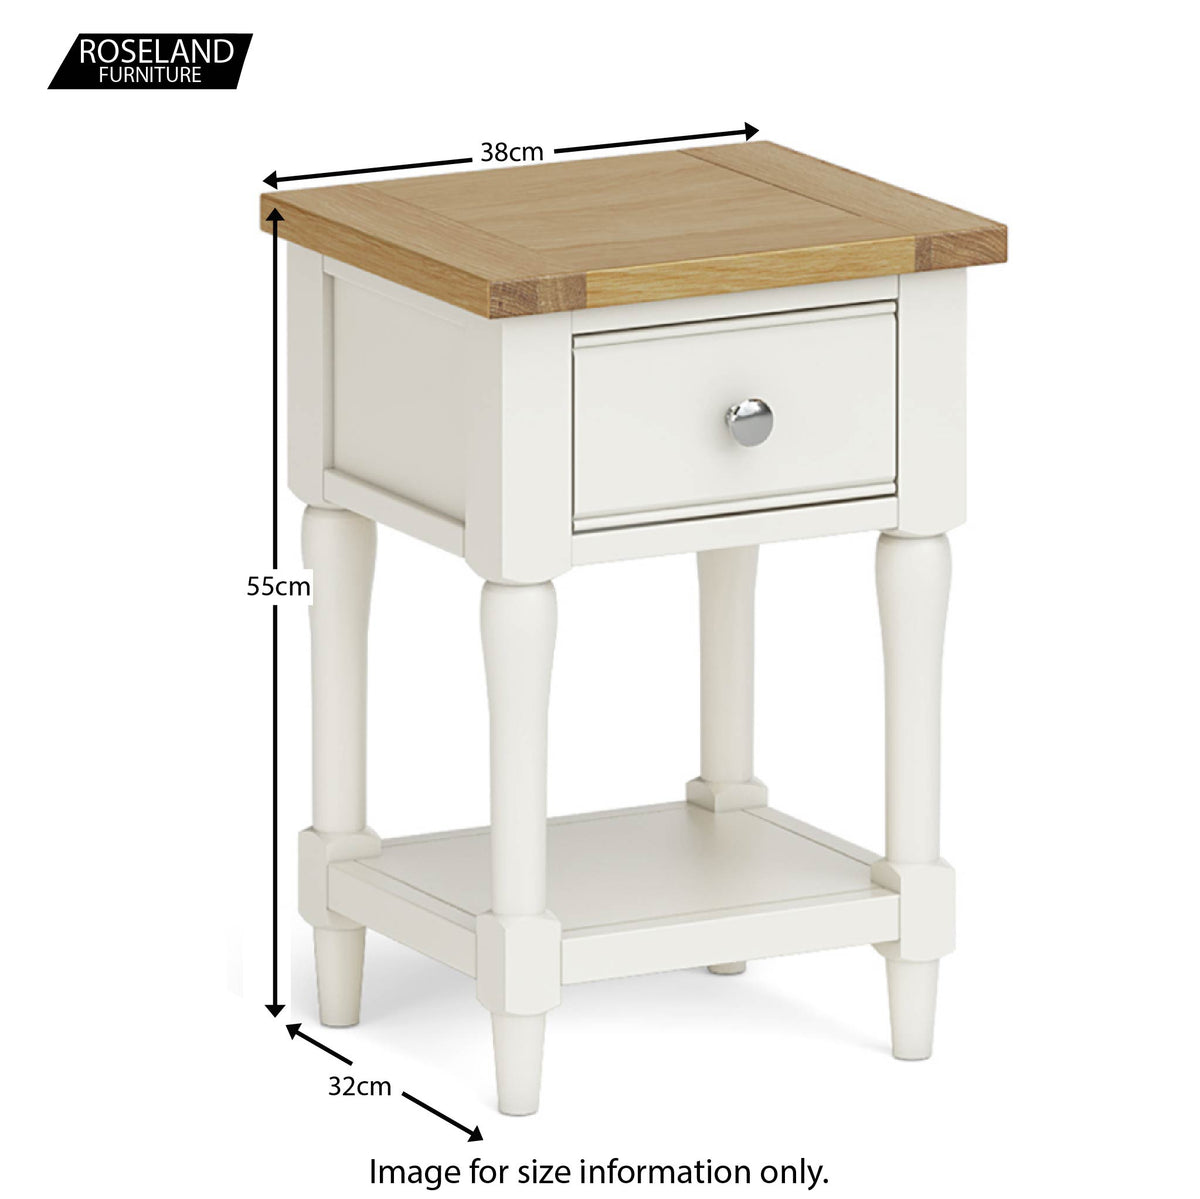 Chichester Lamp/Side Table in Ivory - Size Guide